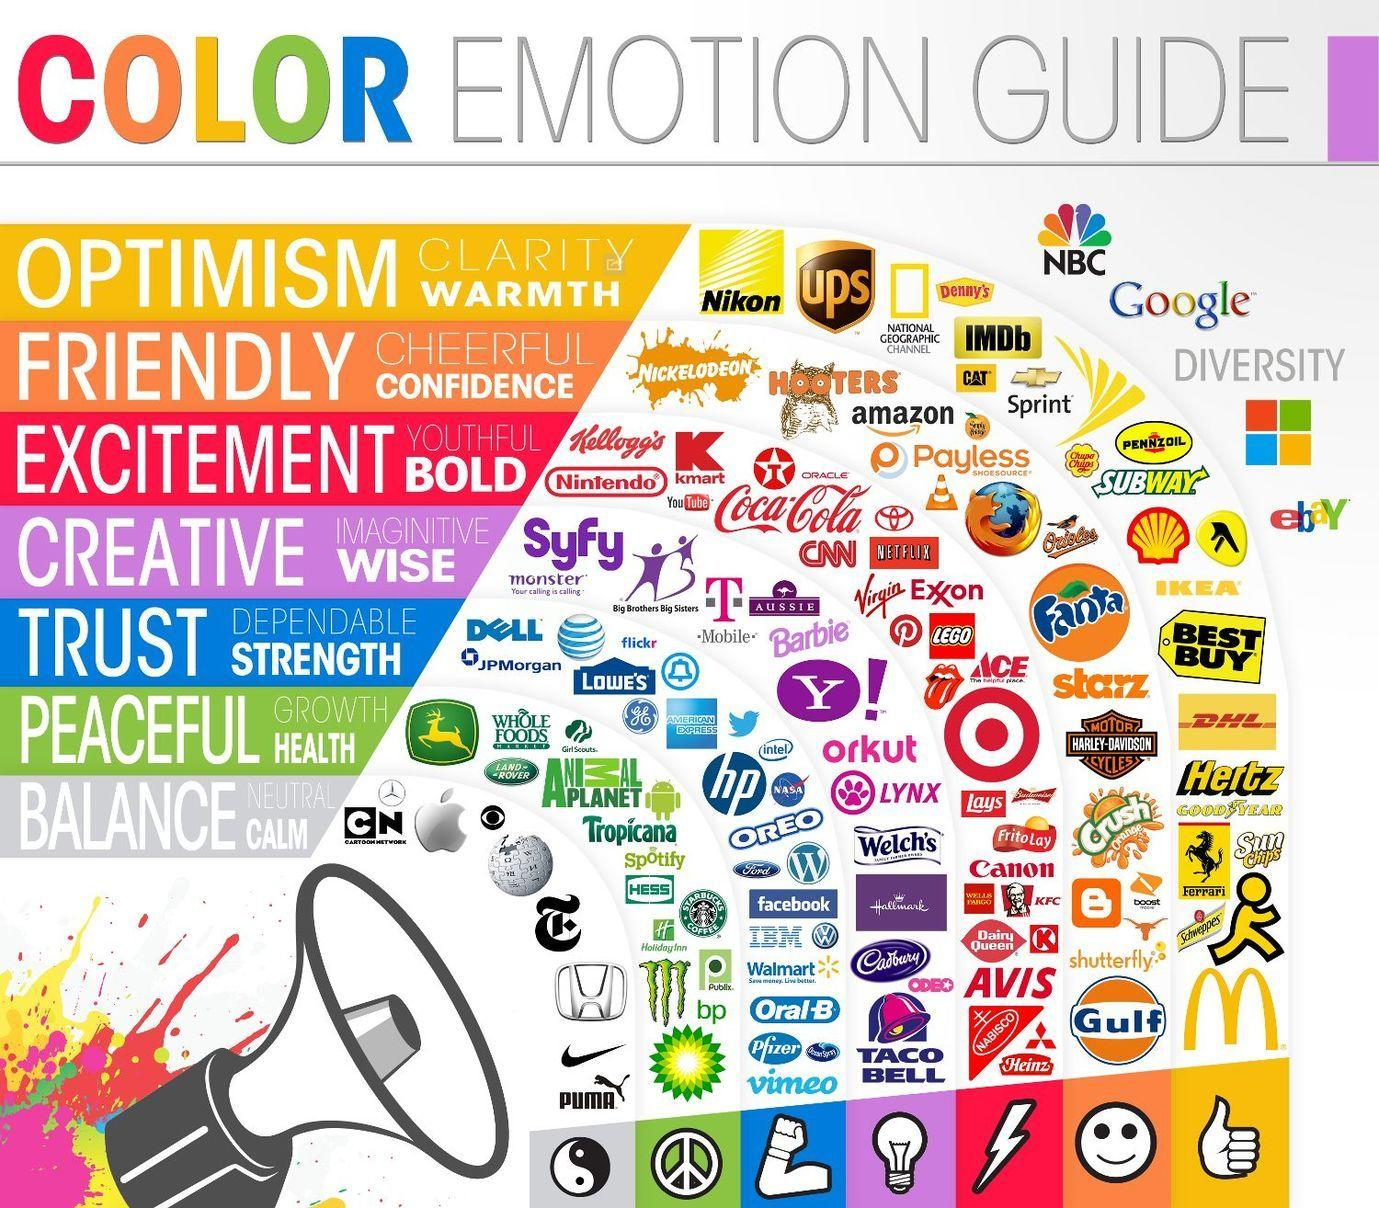 Landing page ideas color emotion guide